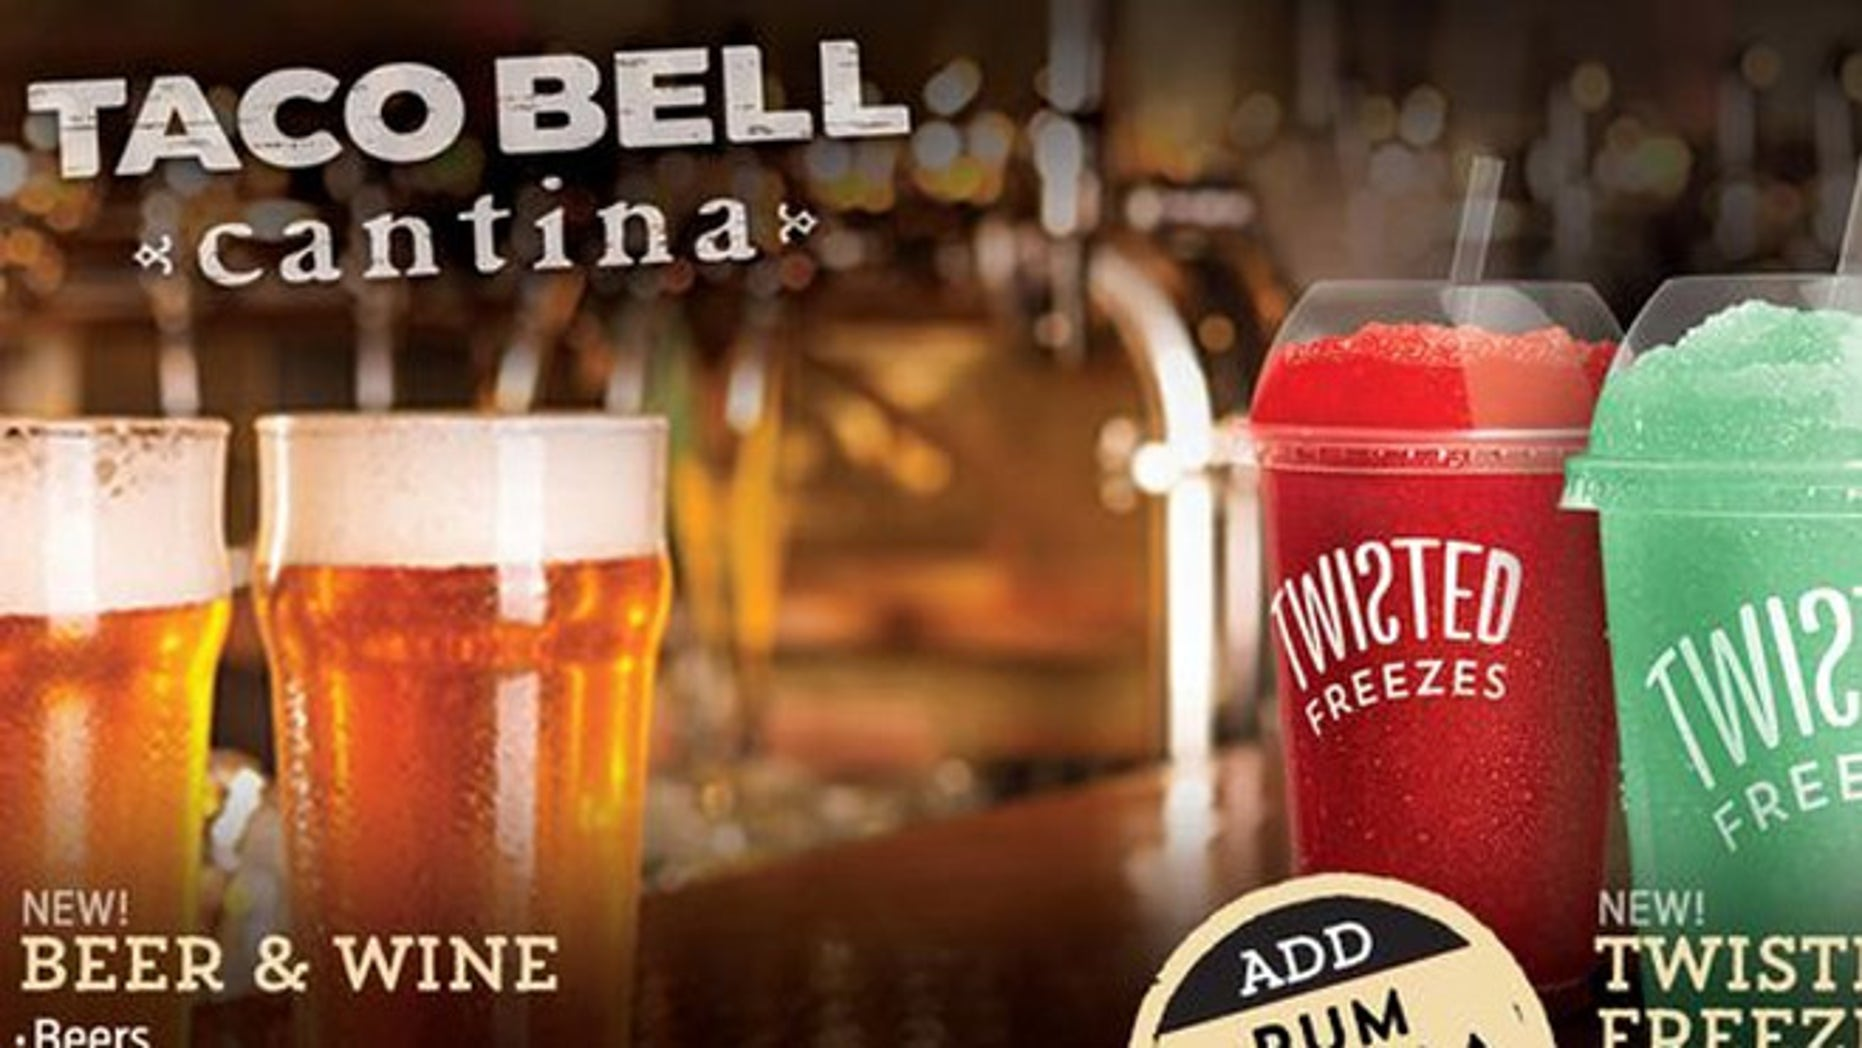 Beer and frozen mixed drinks will be on tap at Taco Bell in Chicago.